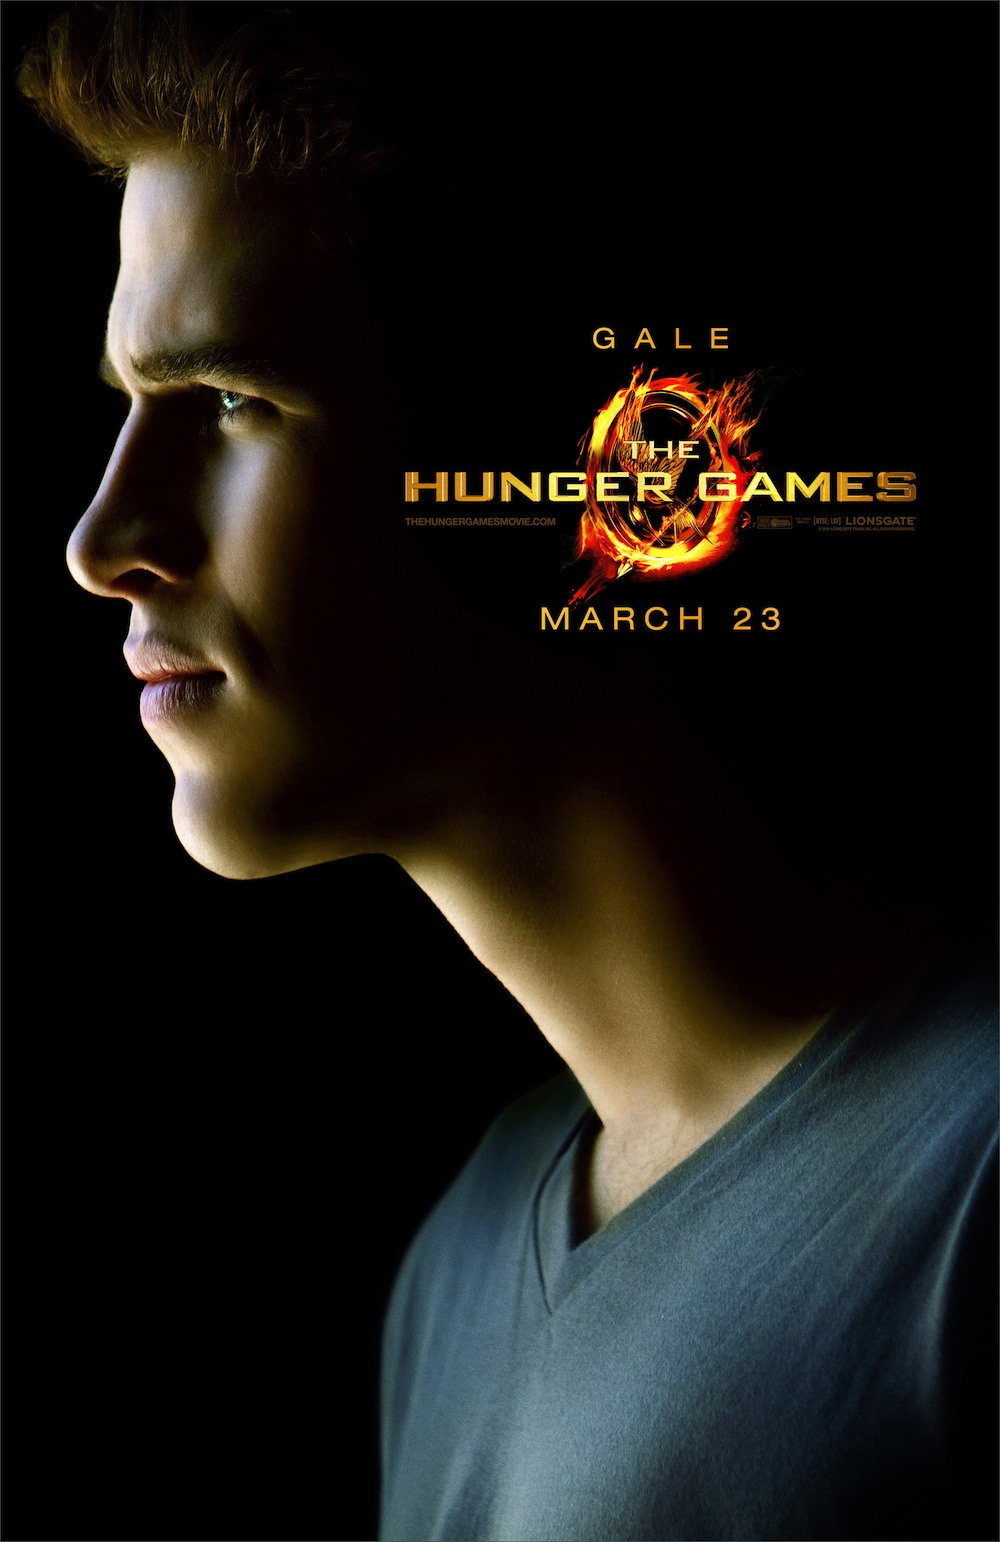 The Hunger Games Poster - Gale